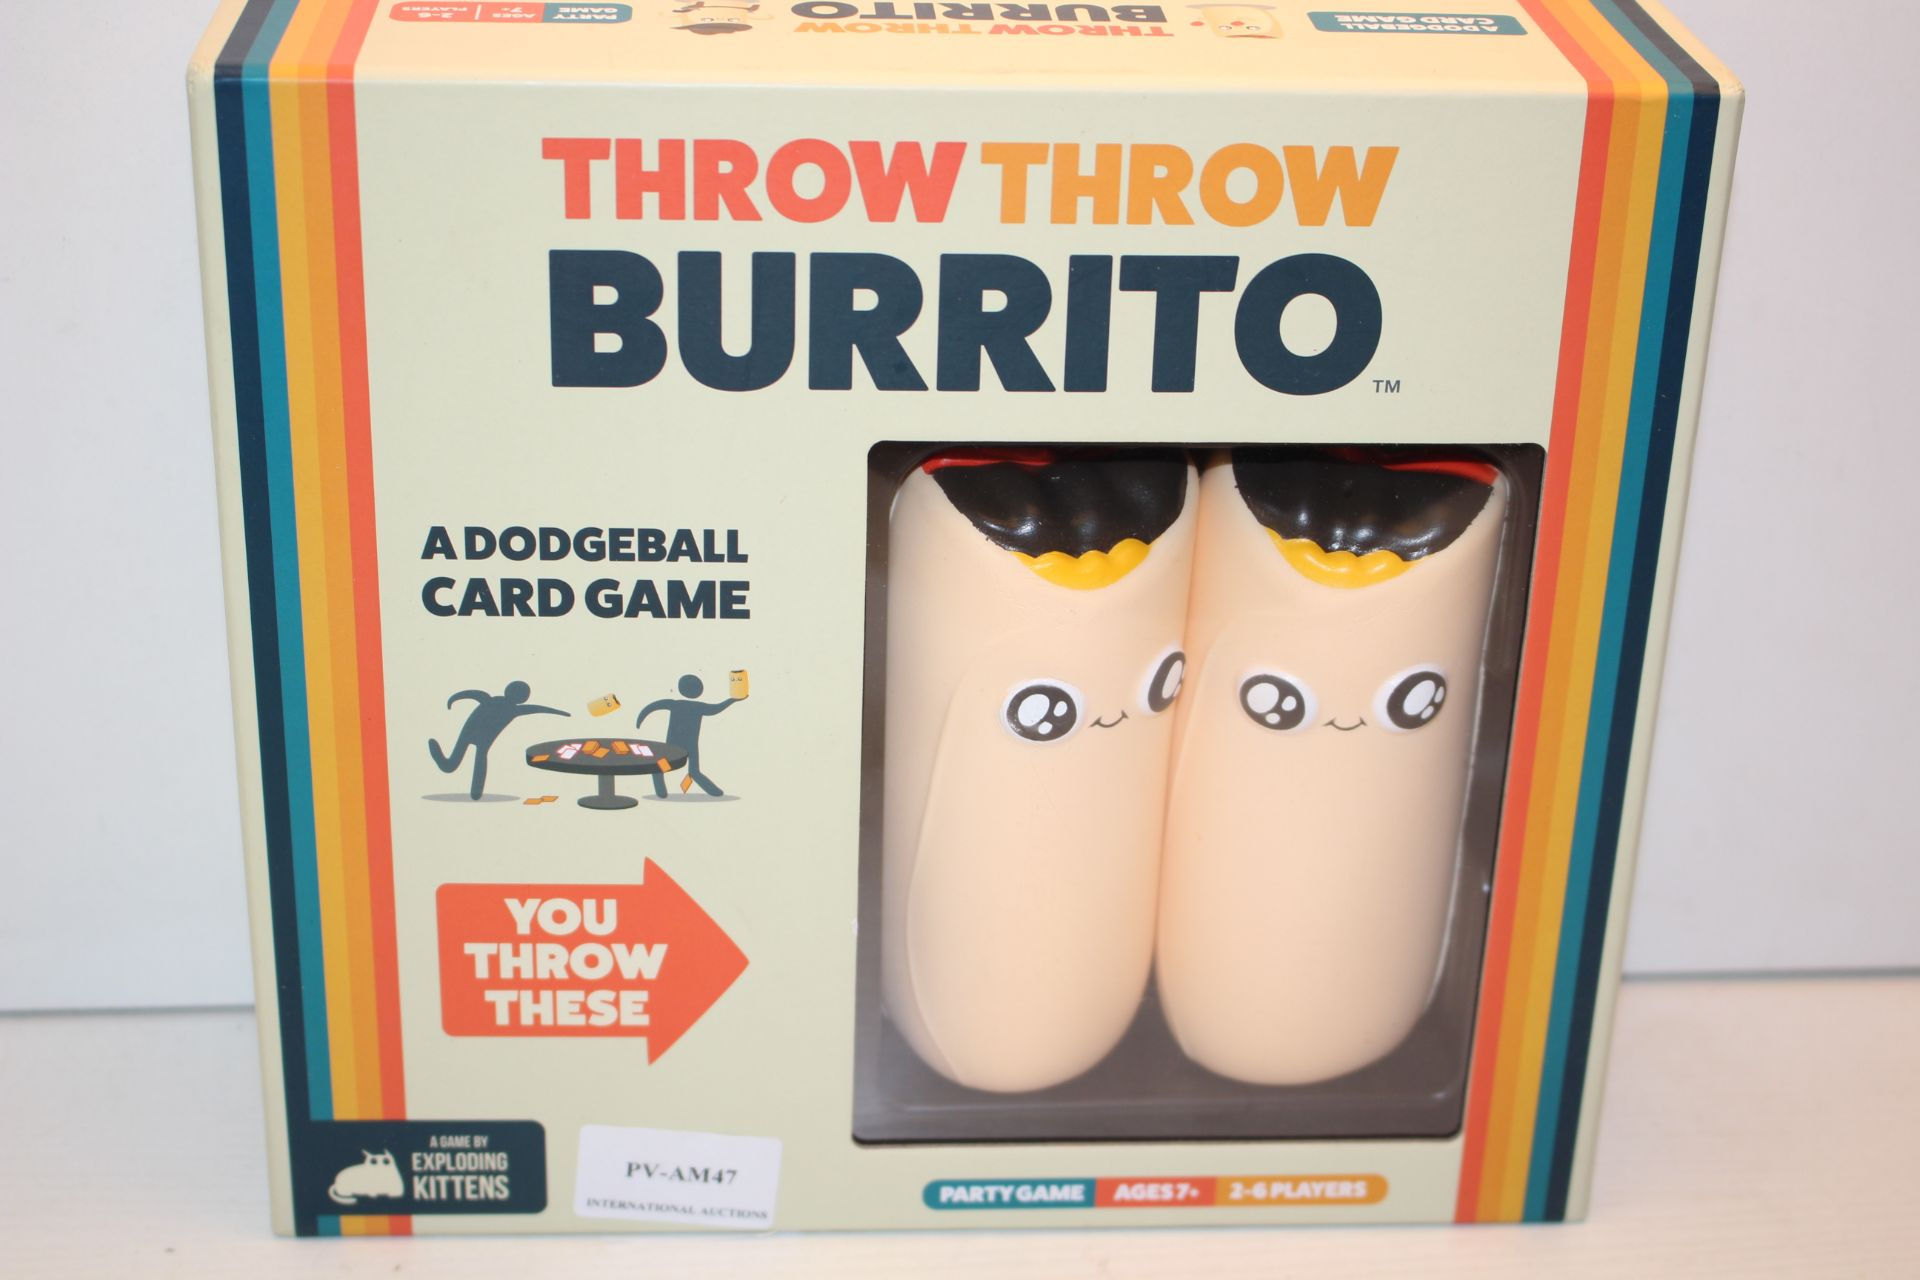 BOXED THROW THROW BURRITO GAMECondition ReportAppraisal Available on Request- All Items are